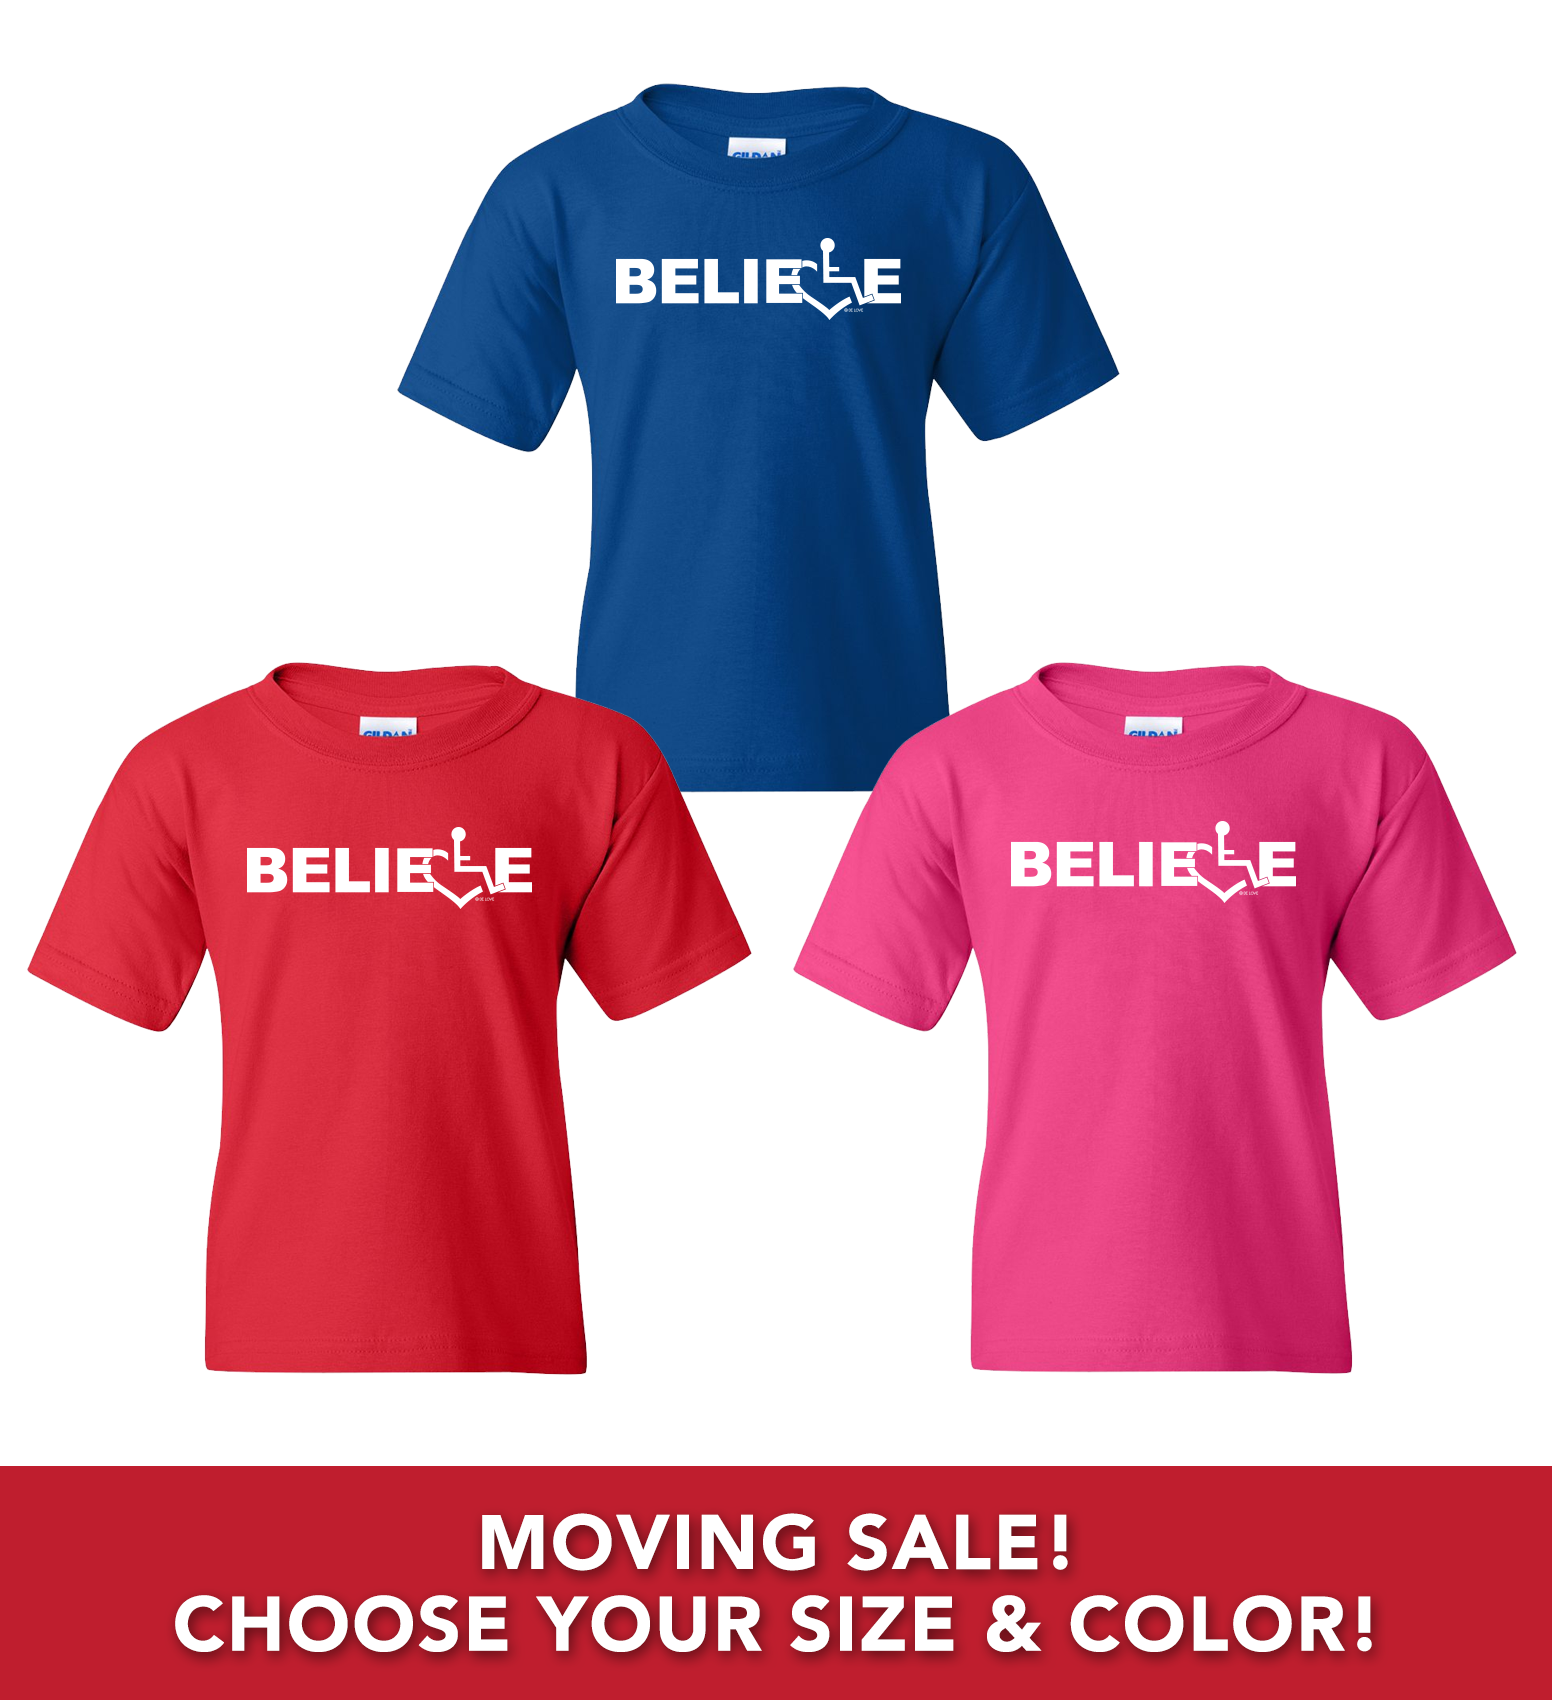 Moving Sale - Believe T-Shirts (Toddler/Youth)